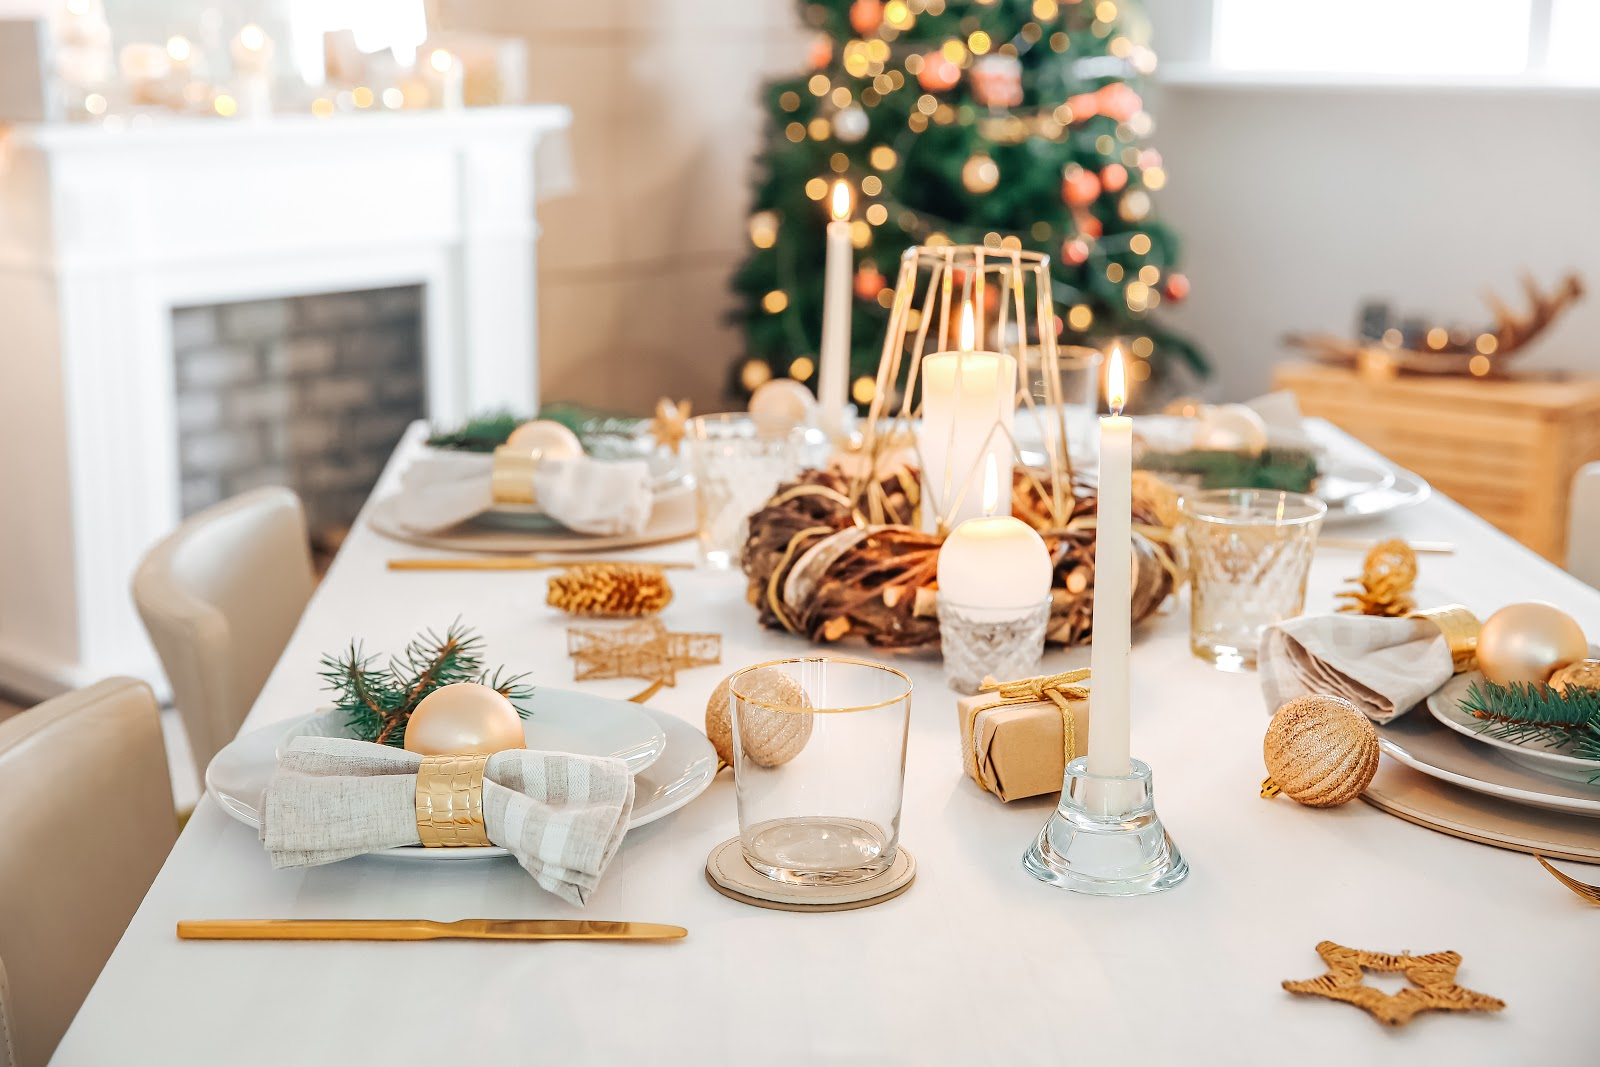 Christmas decorating ideas: A table with white and gold place settings and a Christmas tree in the background